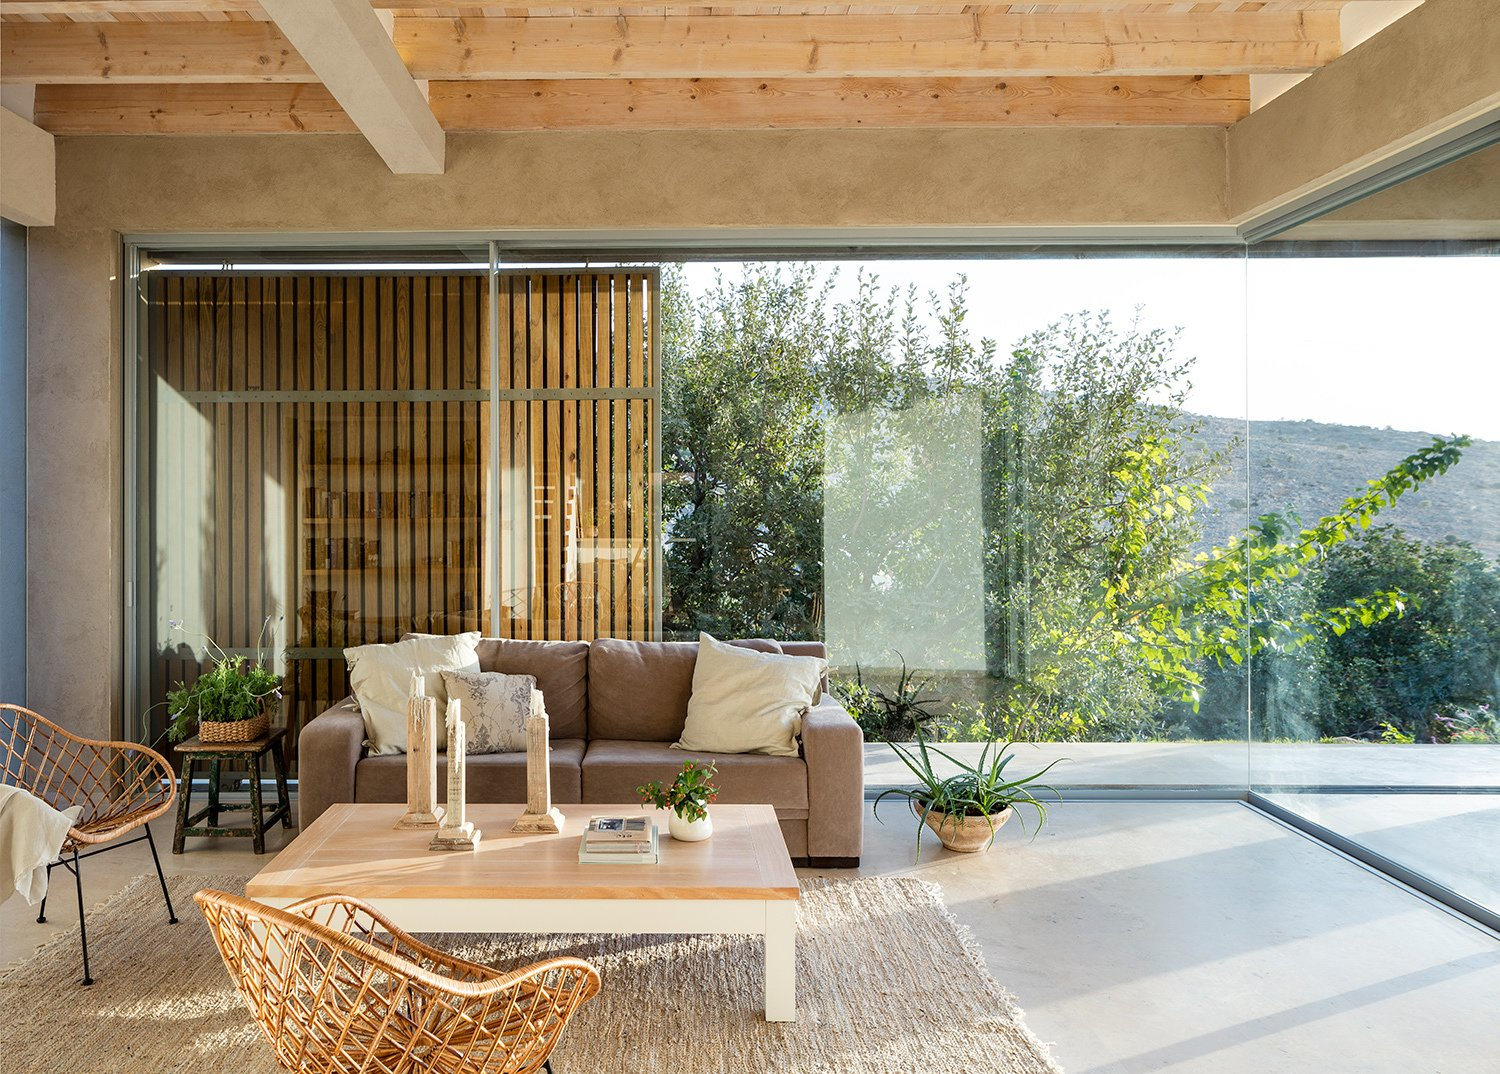 Living Room, Sofa, Chair, End Tables, Coffee Tables, and Rug Floor Expansive glazing provides continuous visual connections to the outdoors.   Photo 7 of 14 in Moveable Wooden Screens Add a Playful Touch to This Airy Home in Israel